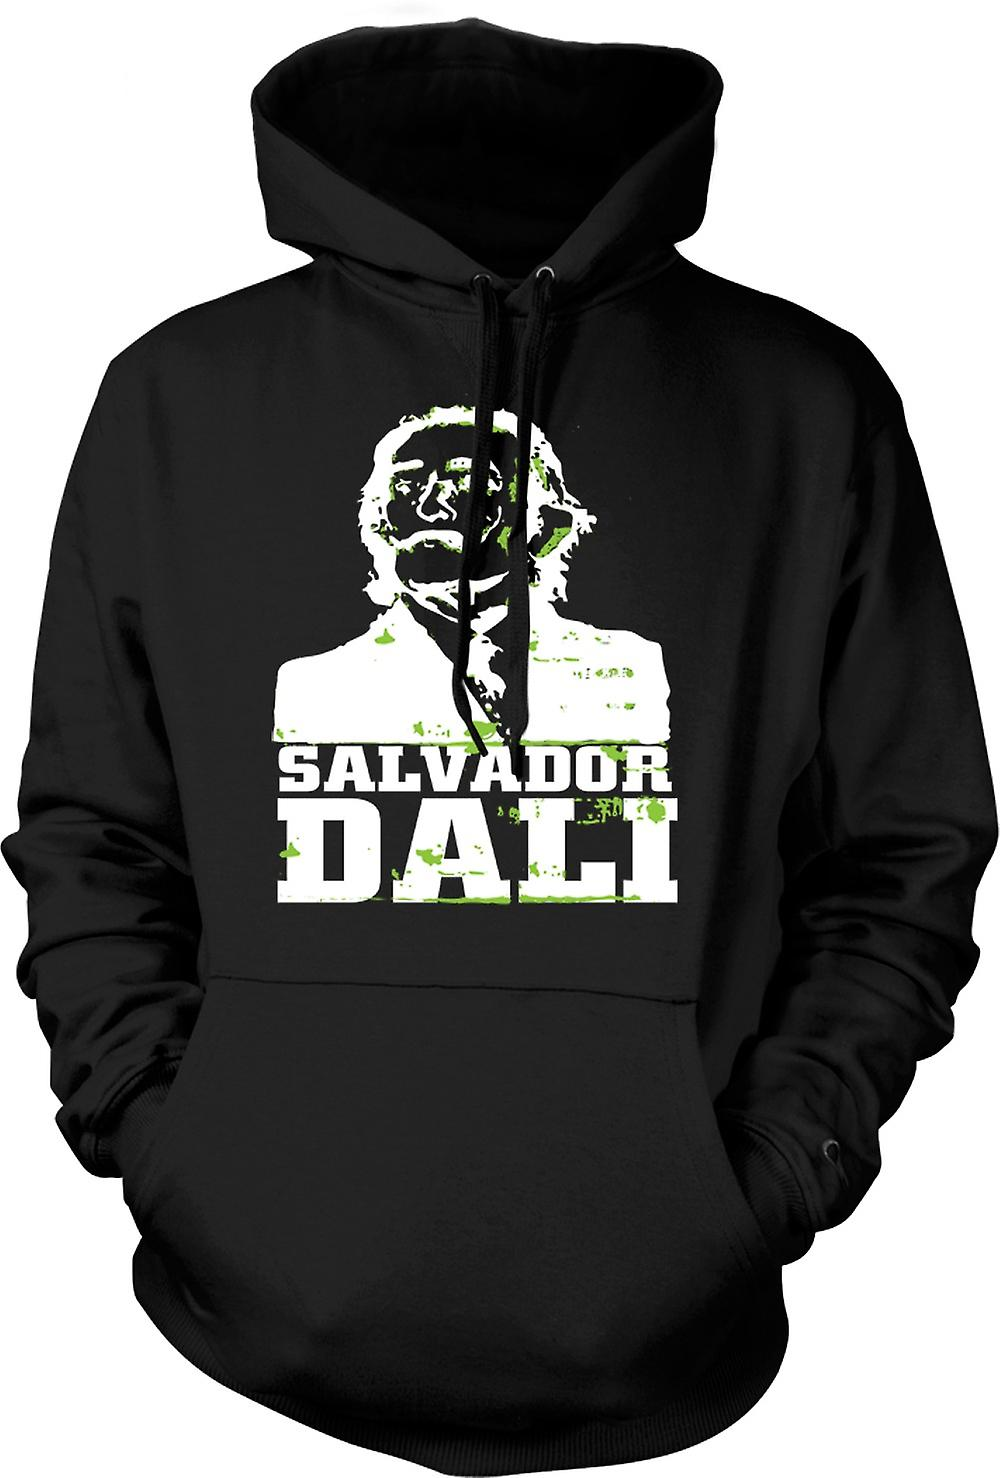 Mens Hoodie - Salvador Dali Portrait - Art Surréalisme